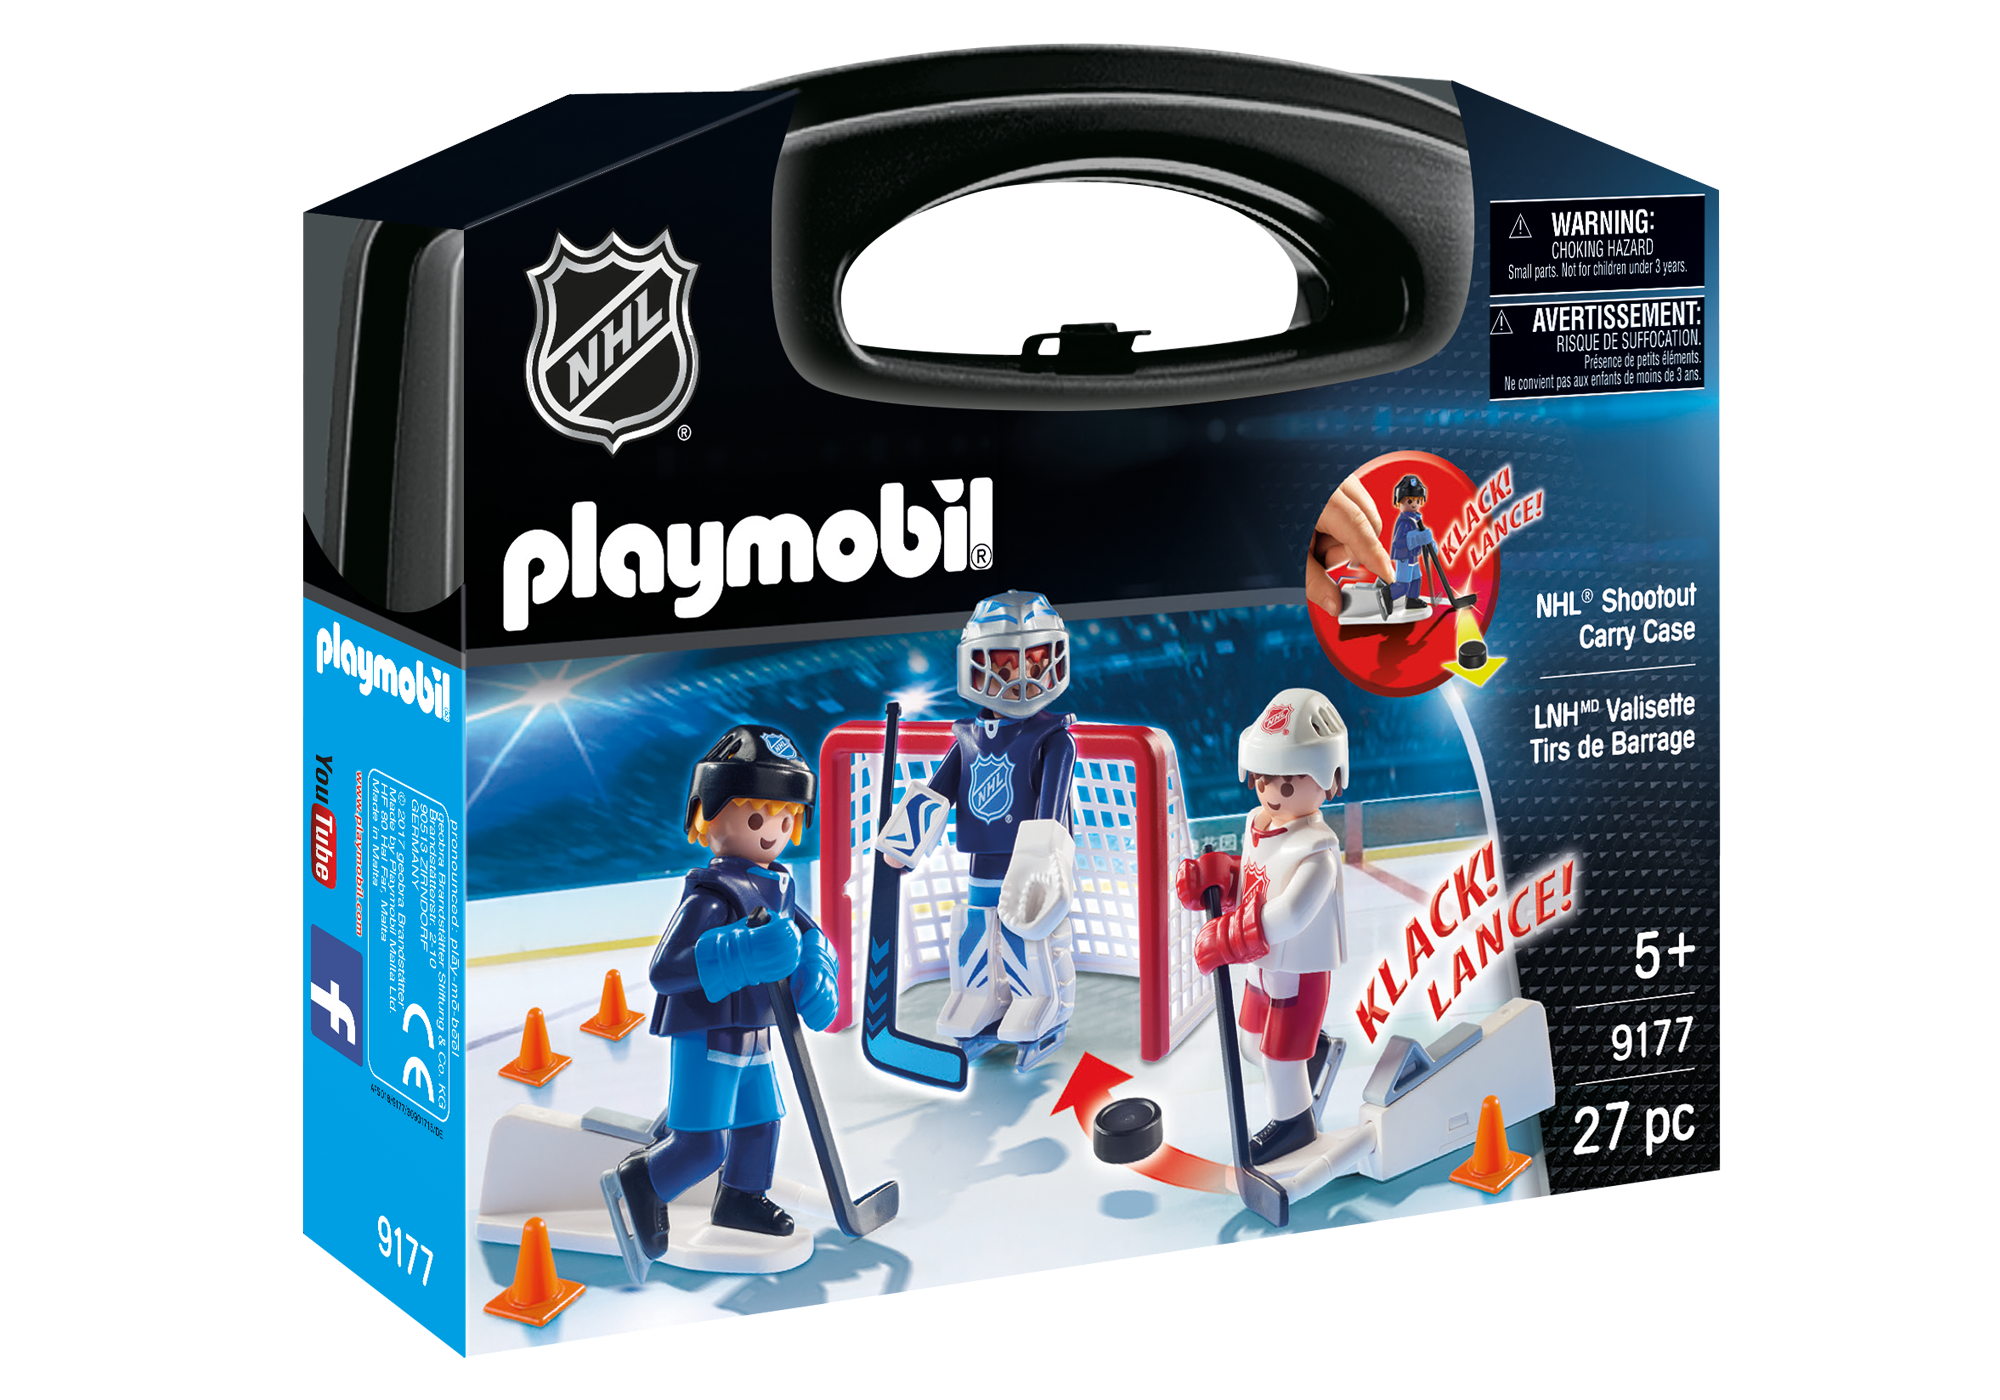 http://media.playmobil.com/i/playmobil/9177_product_box_front/NHL™ Shootout Carry Case